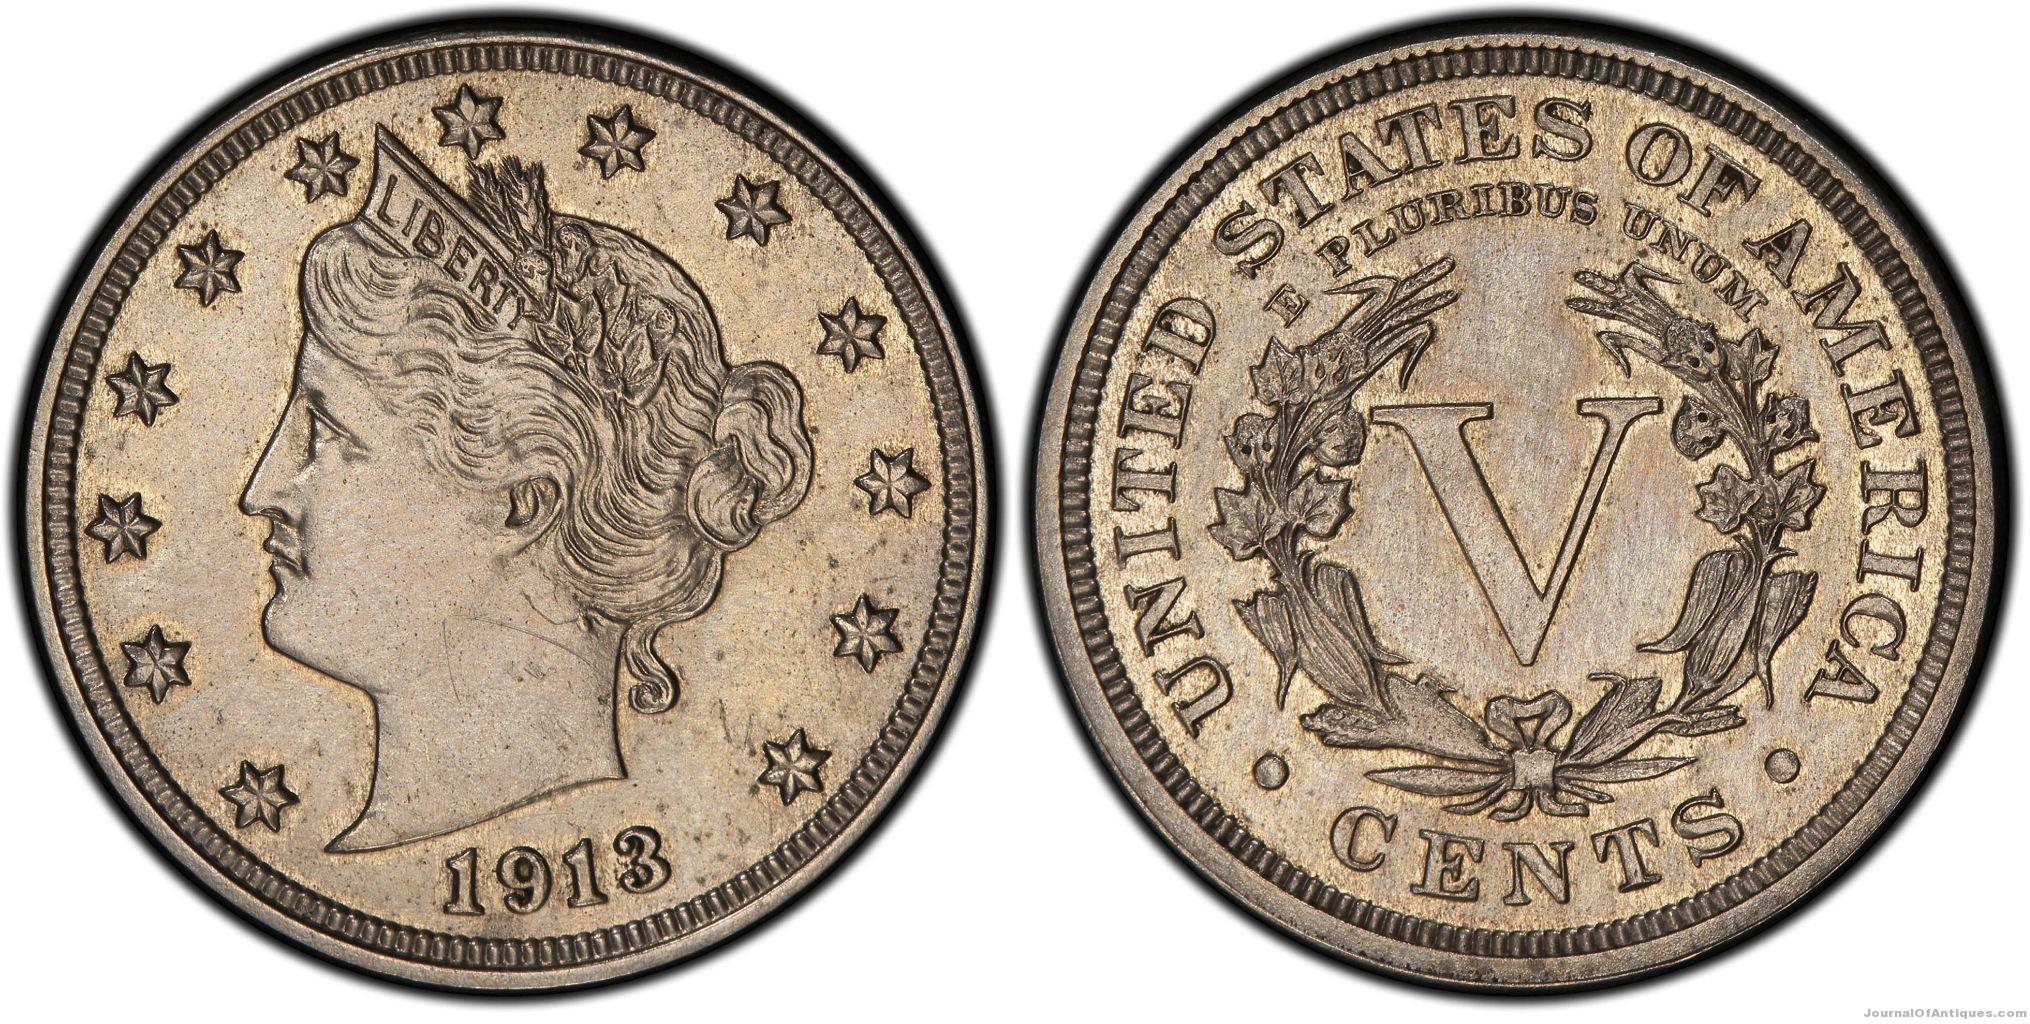 Ken's Korner: Rare 1913 nickel could fetch $5M